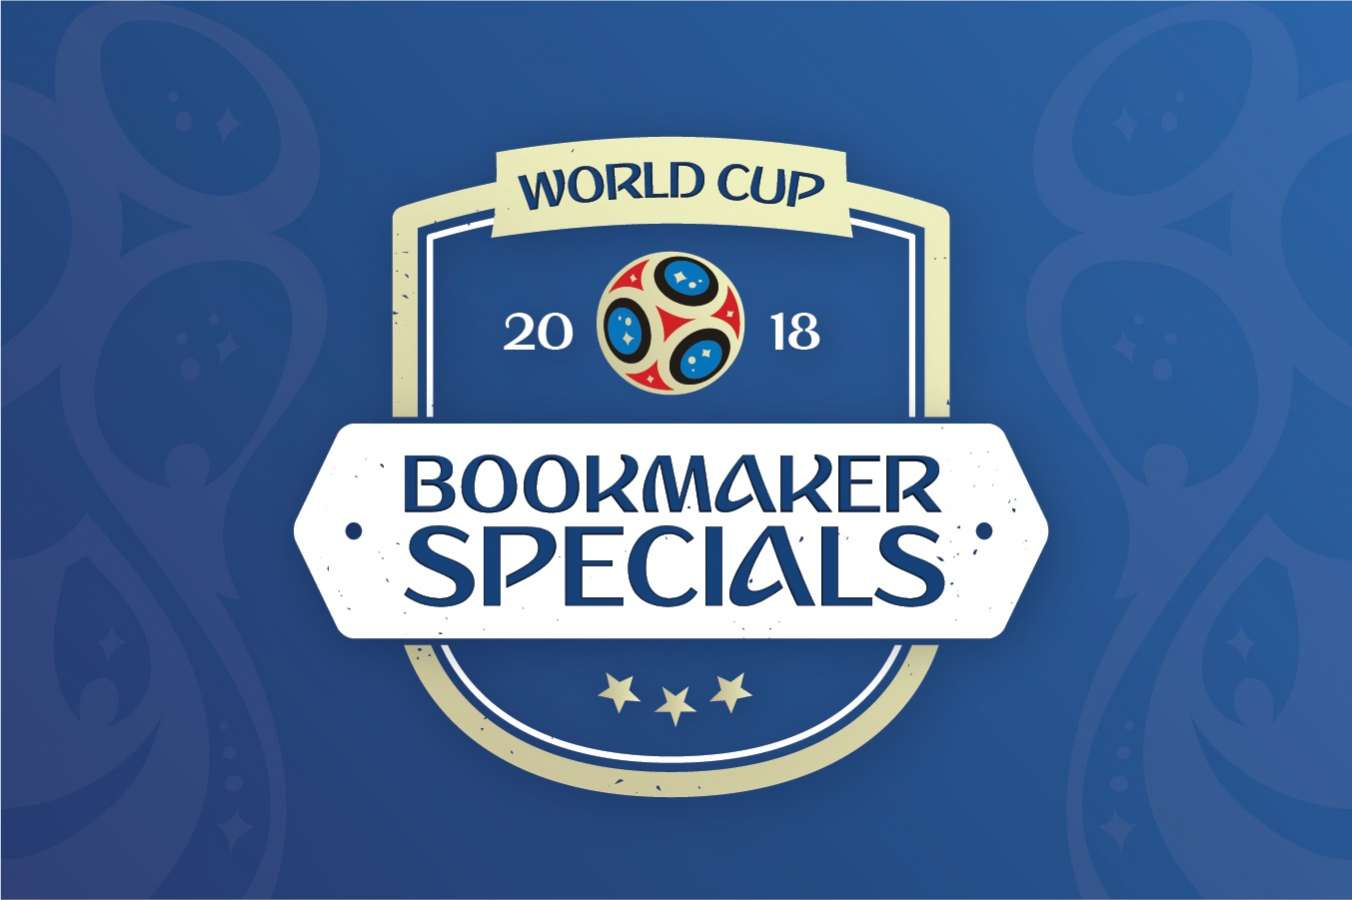 World Cup bookie specials